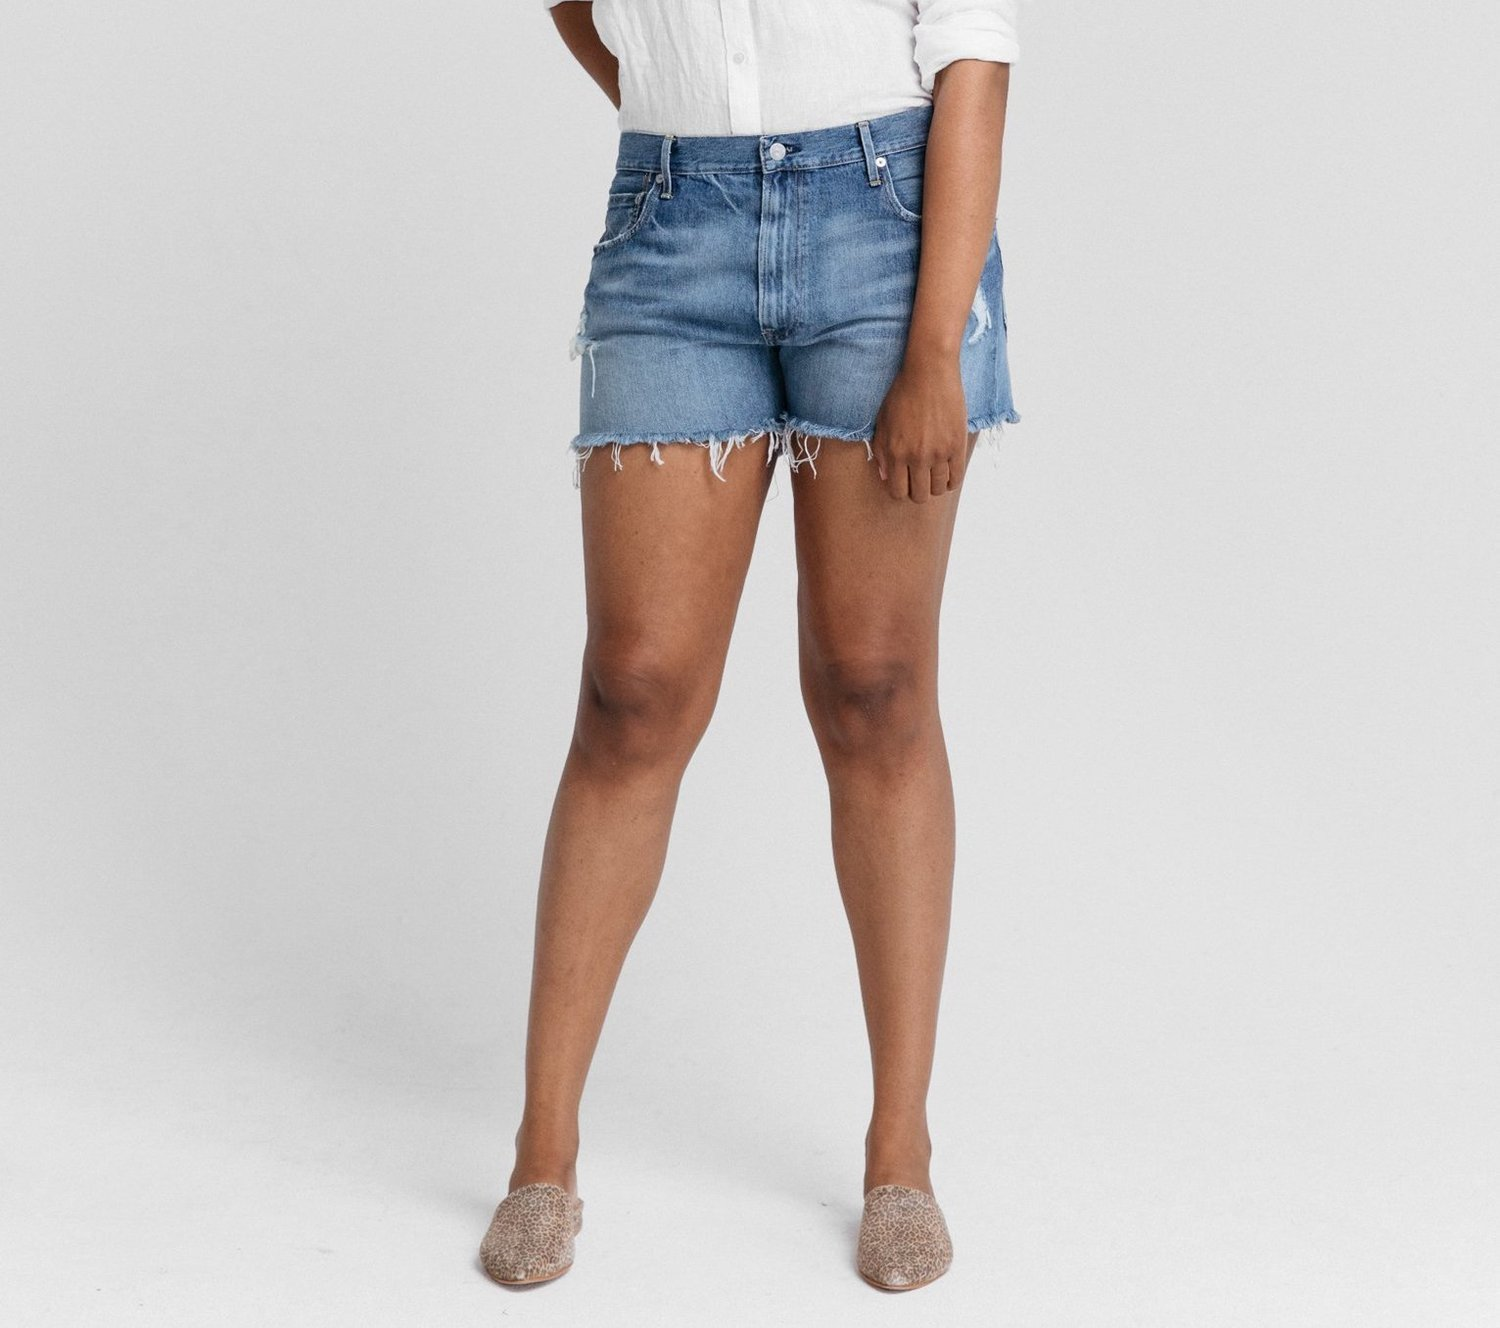 Sustainable Clothes French Shorts High Rise Shorts Linen Shorts Women High Waisted Shorts